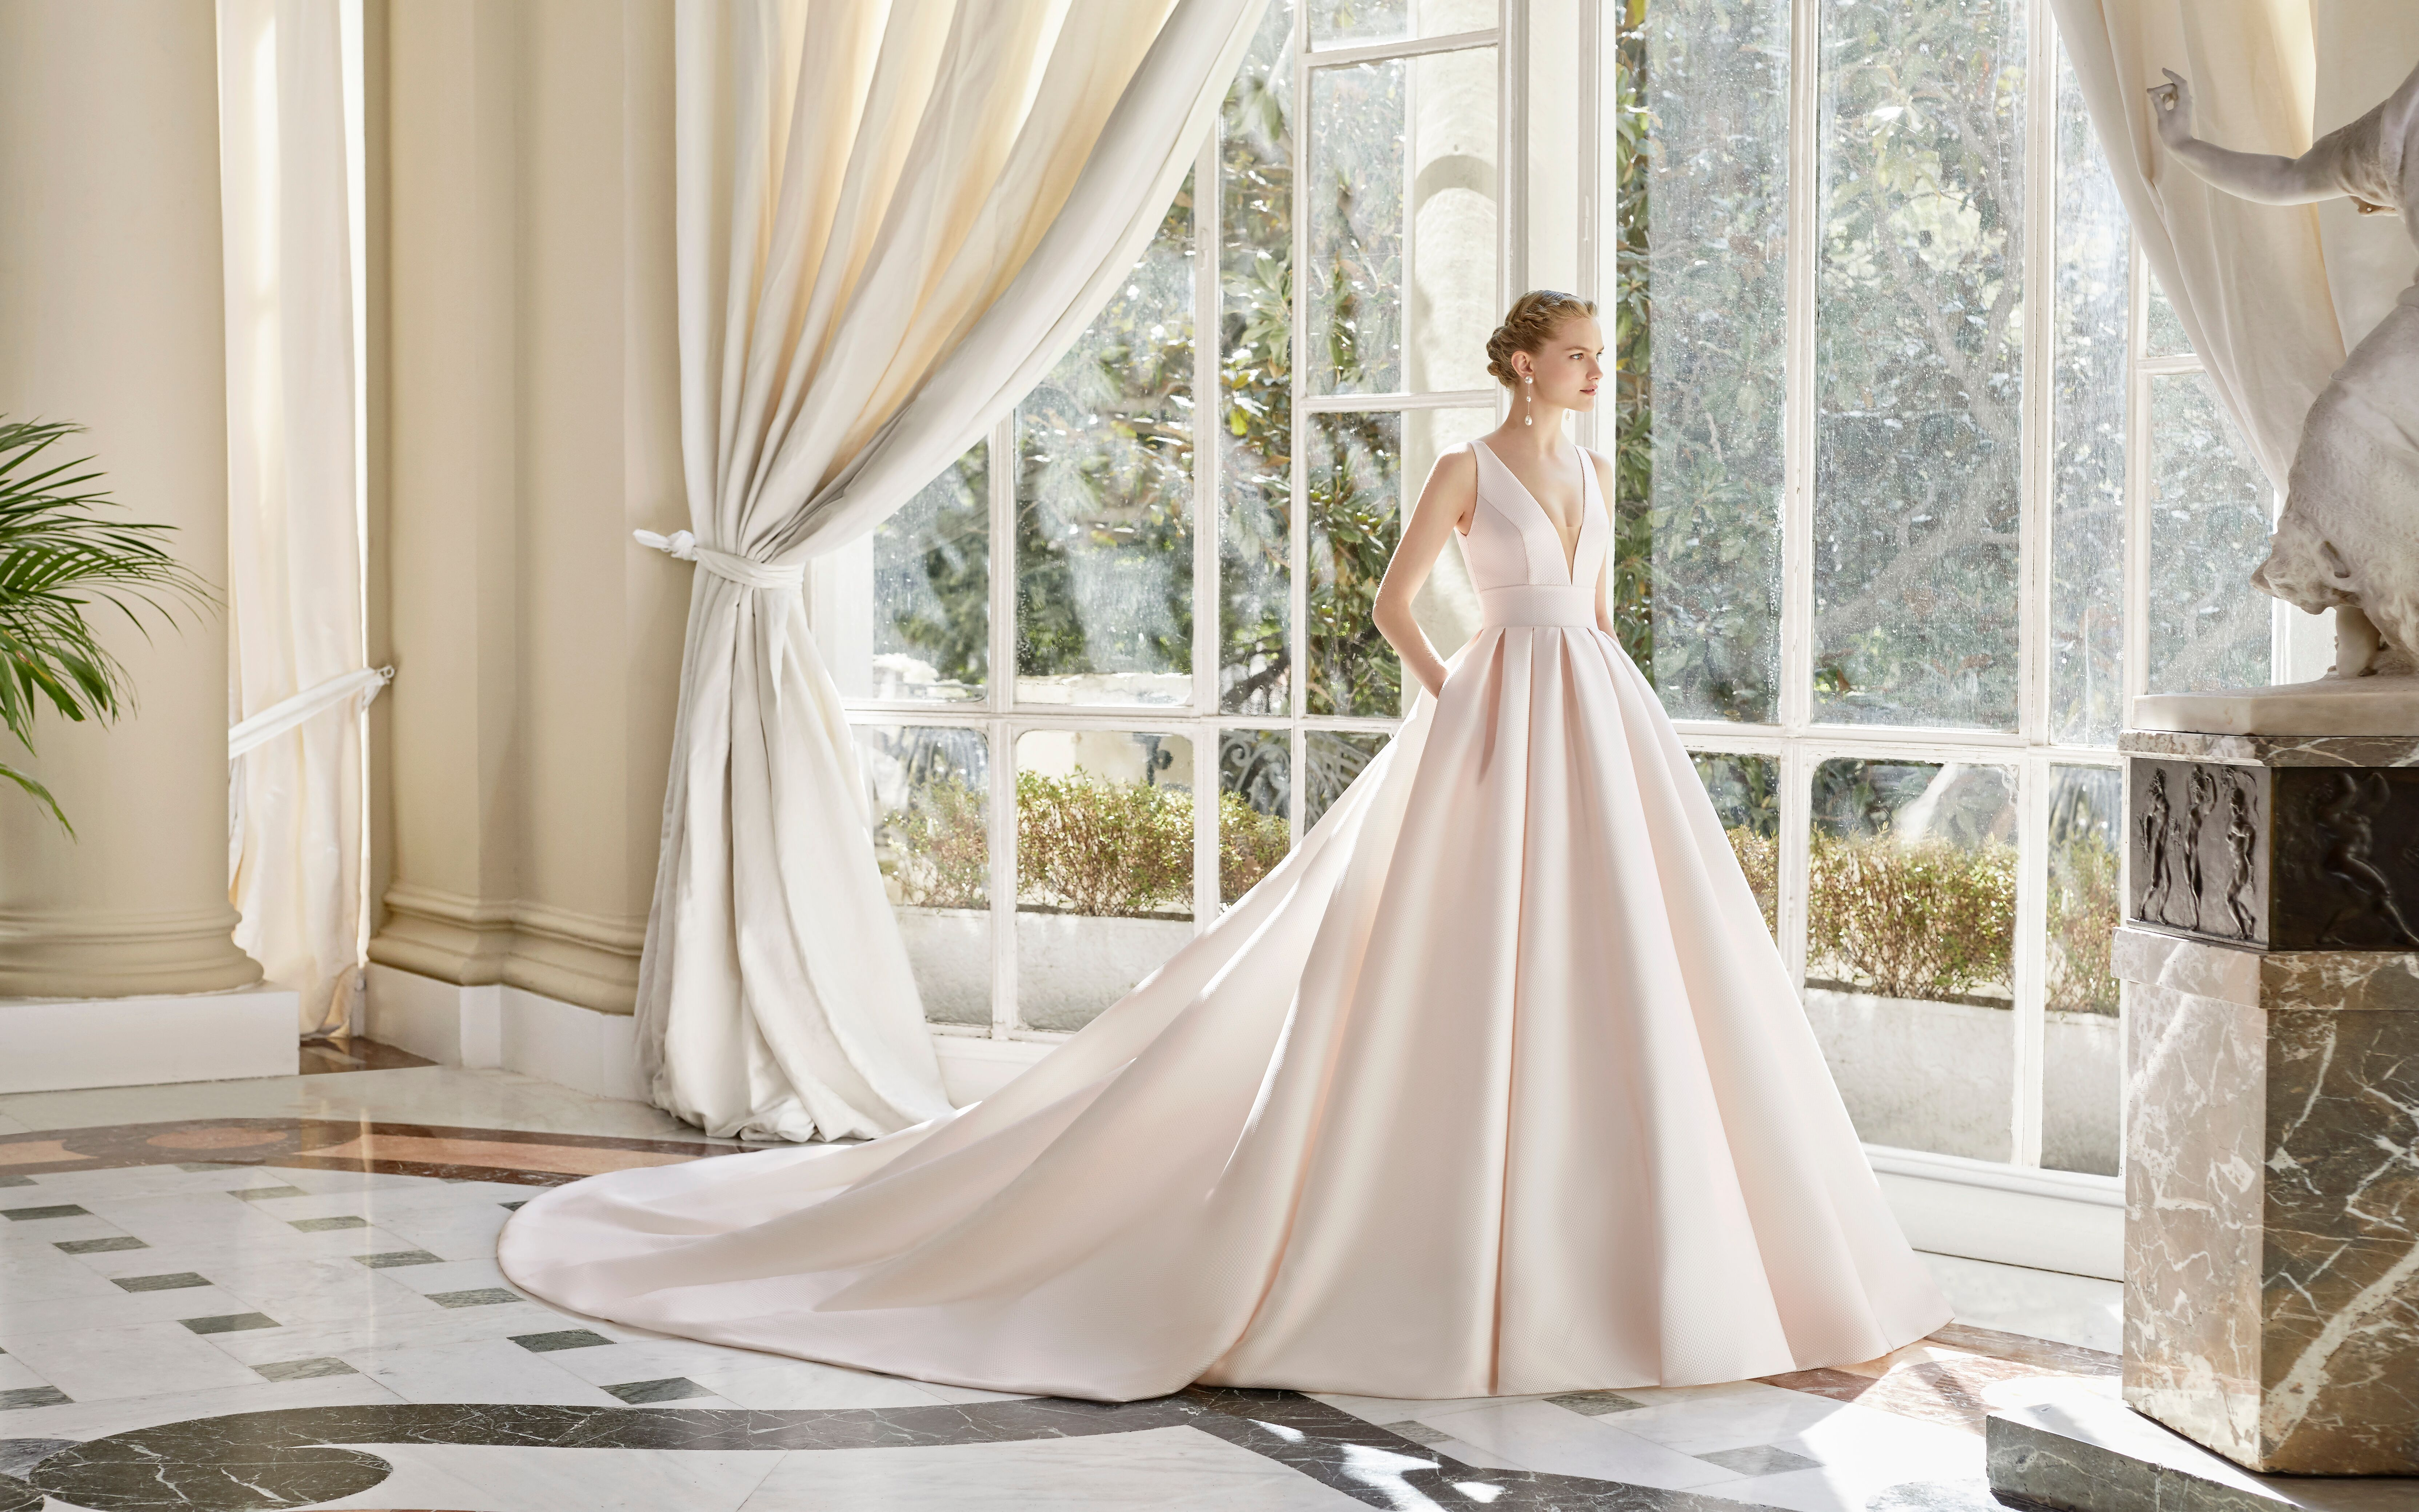 Simply Luxe Bridal   Bridal Salons   The Knot